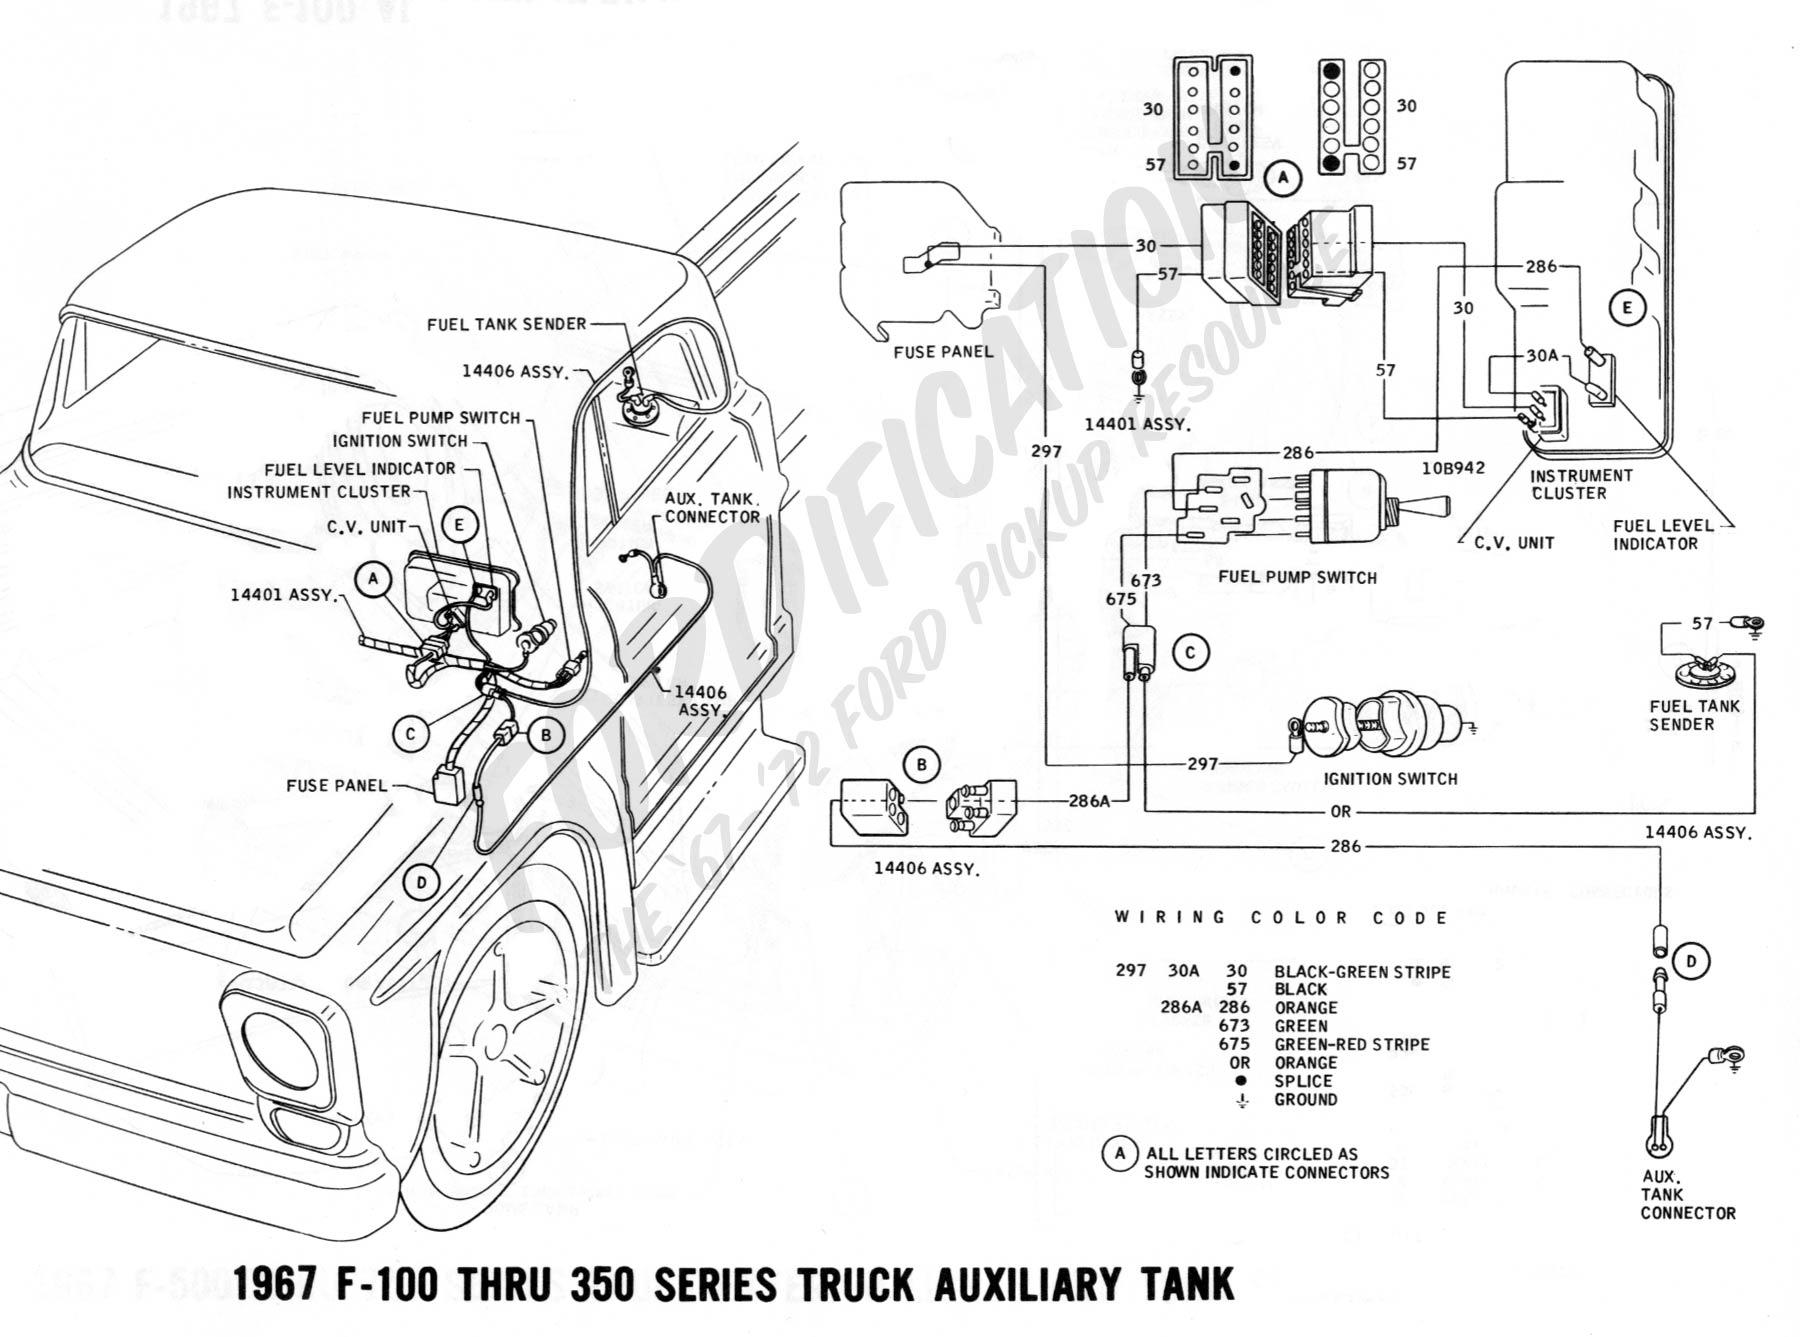 ford truck technical drawings and schematics section h 1983 Ford Bronco Wiring Diagram 1993 Ford Bronco Wiring Diagram